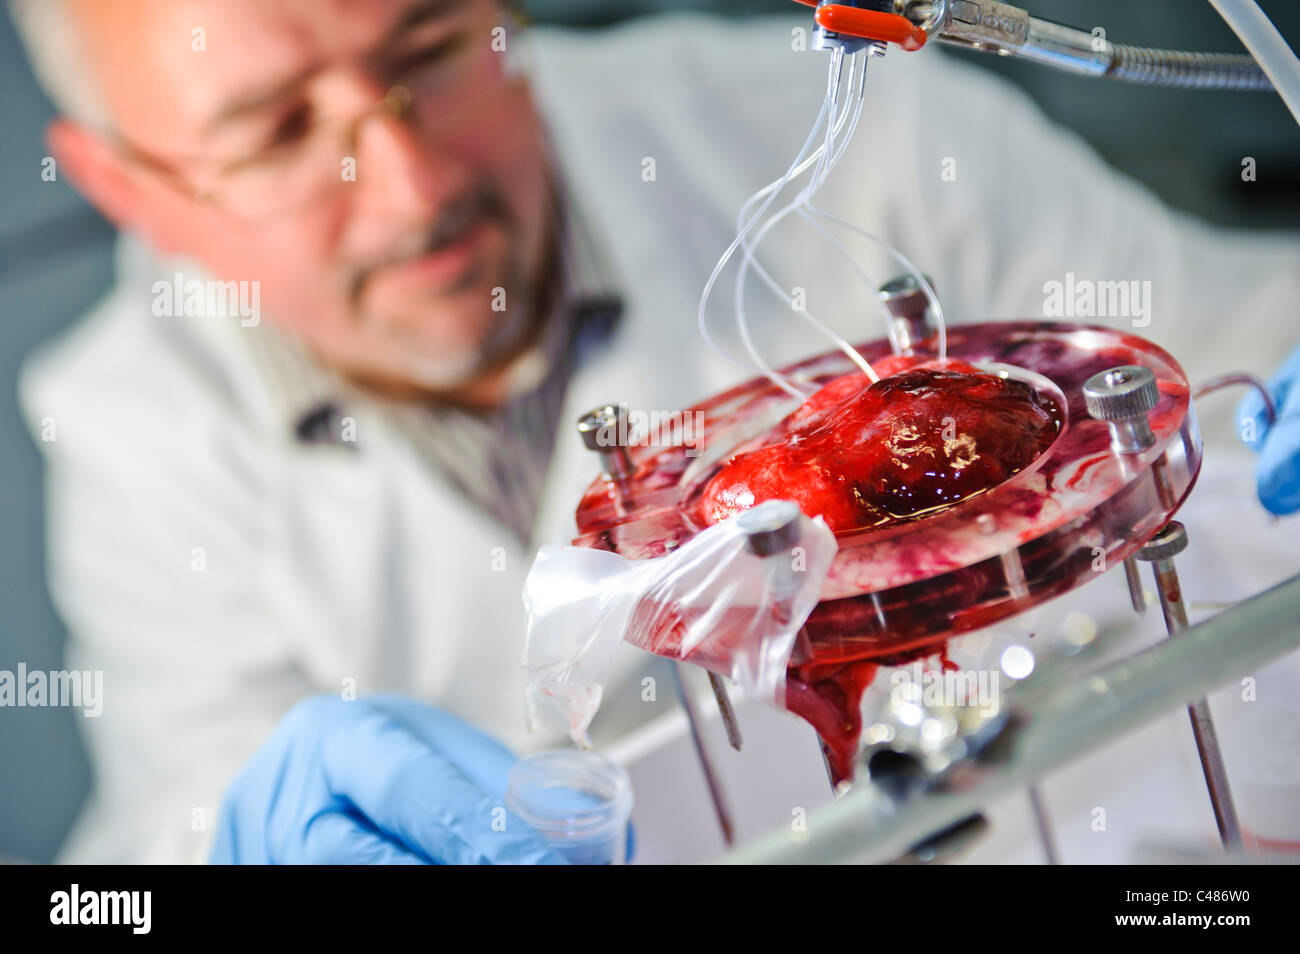 Male scientist in white lab coat and blue gloves perfusing a human placenta in a science lab - Stock Image